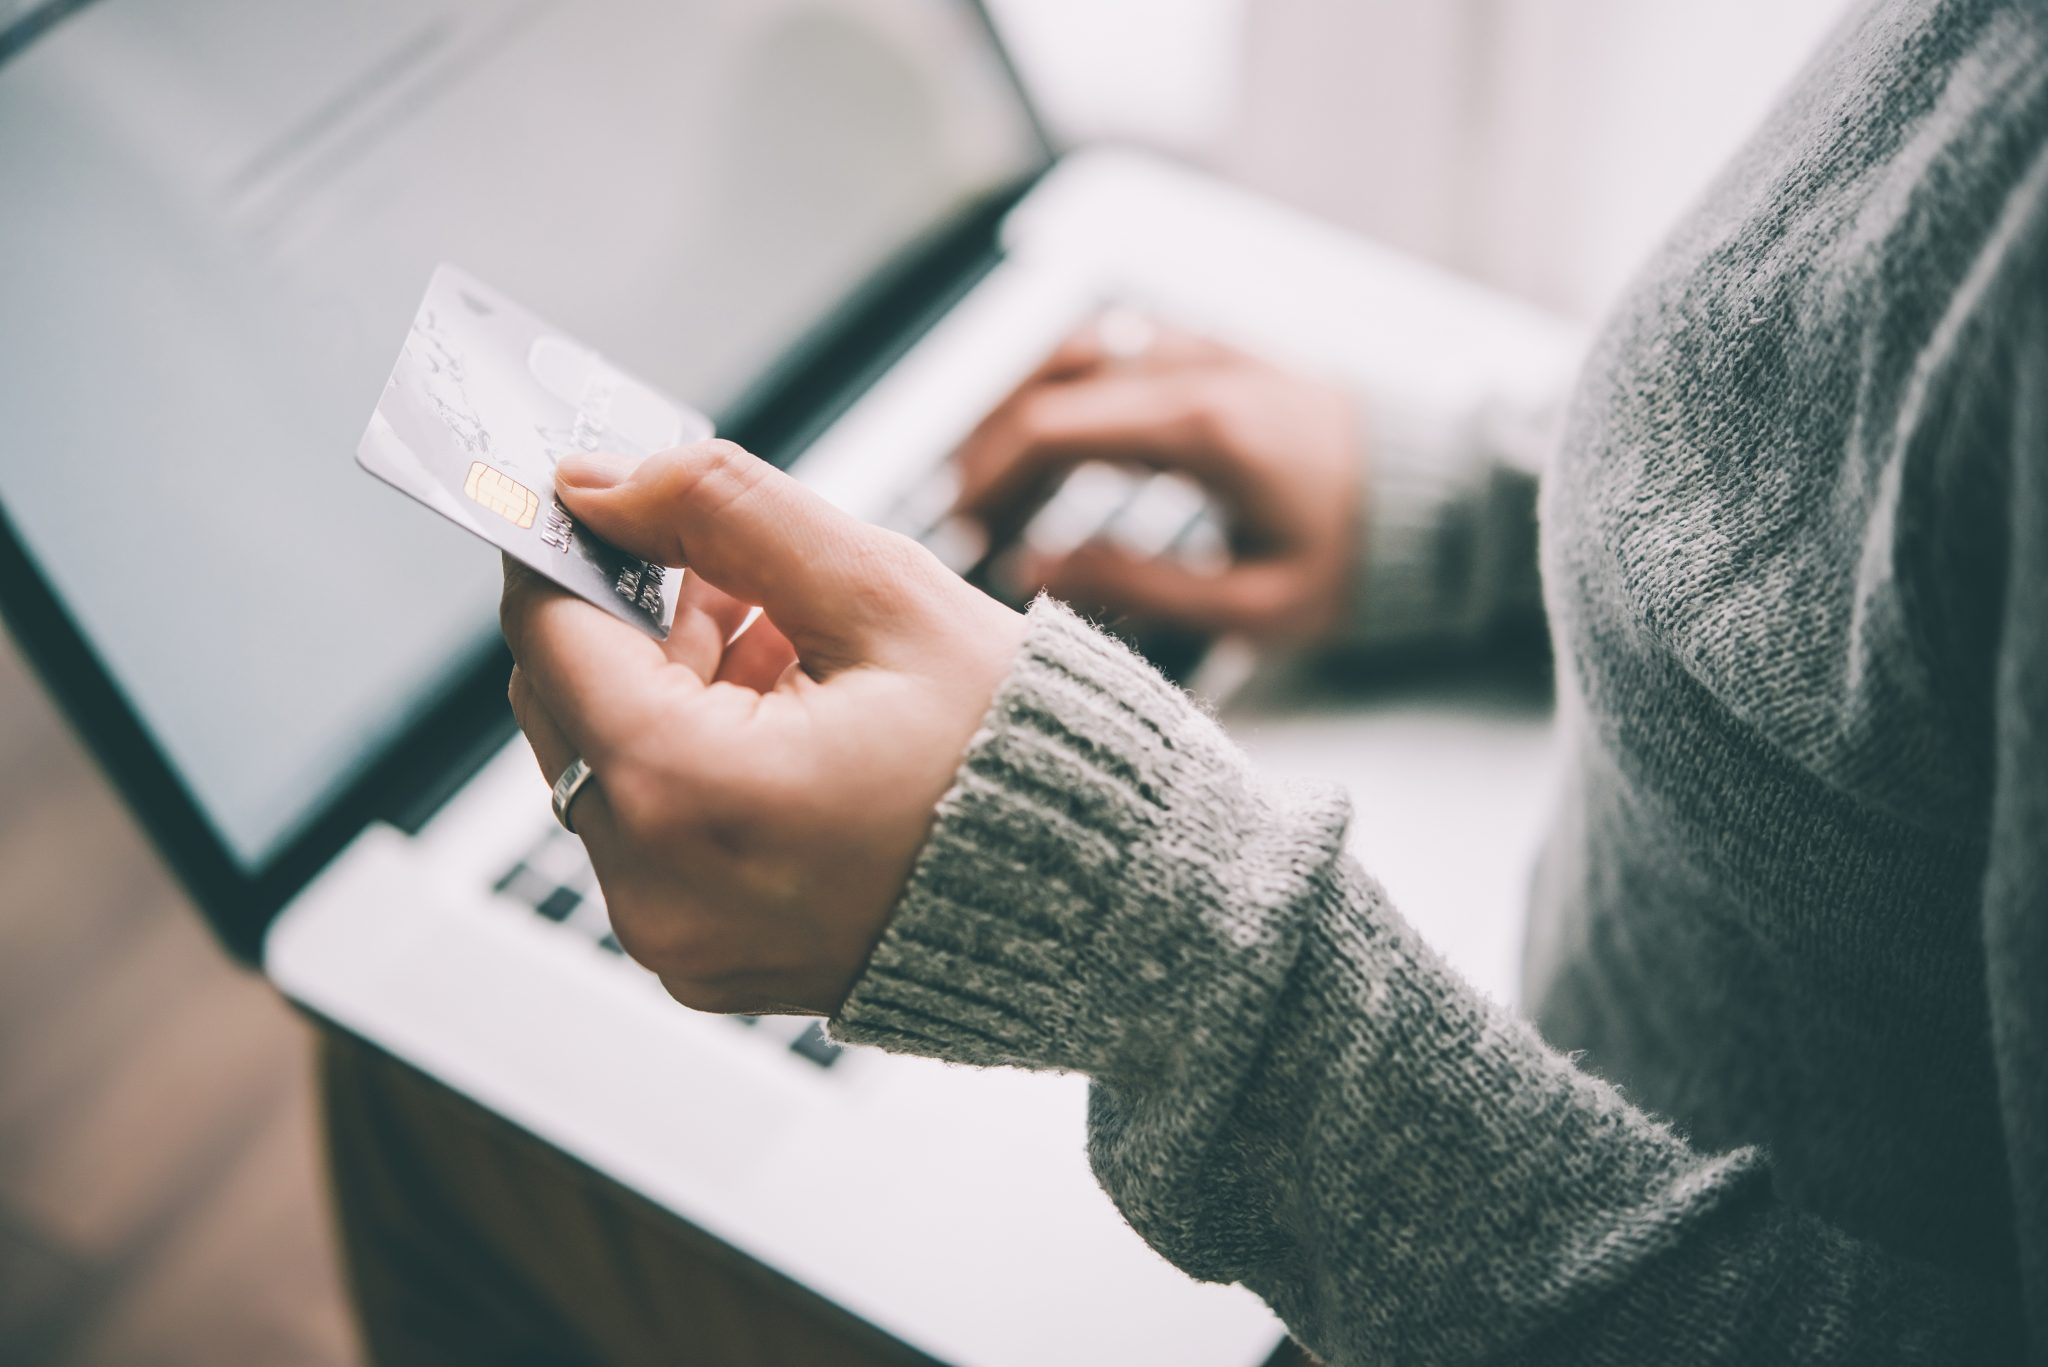 A person using a credit card.